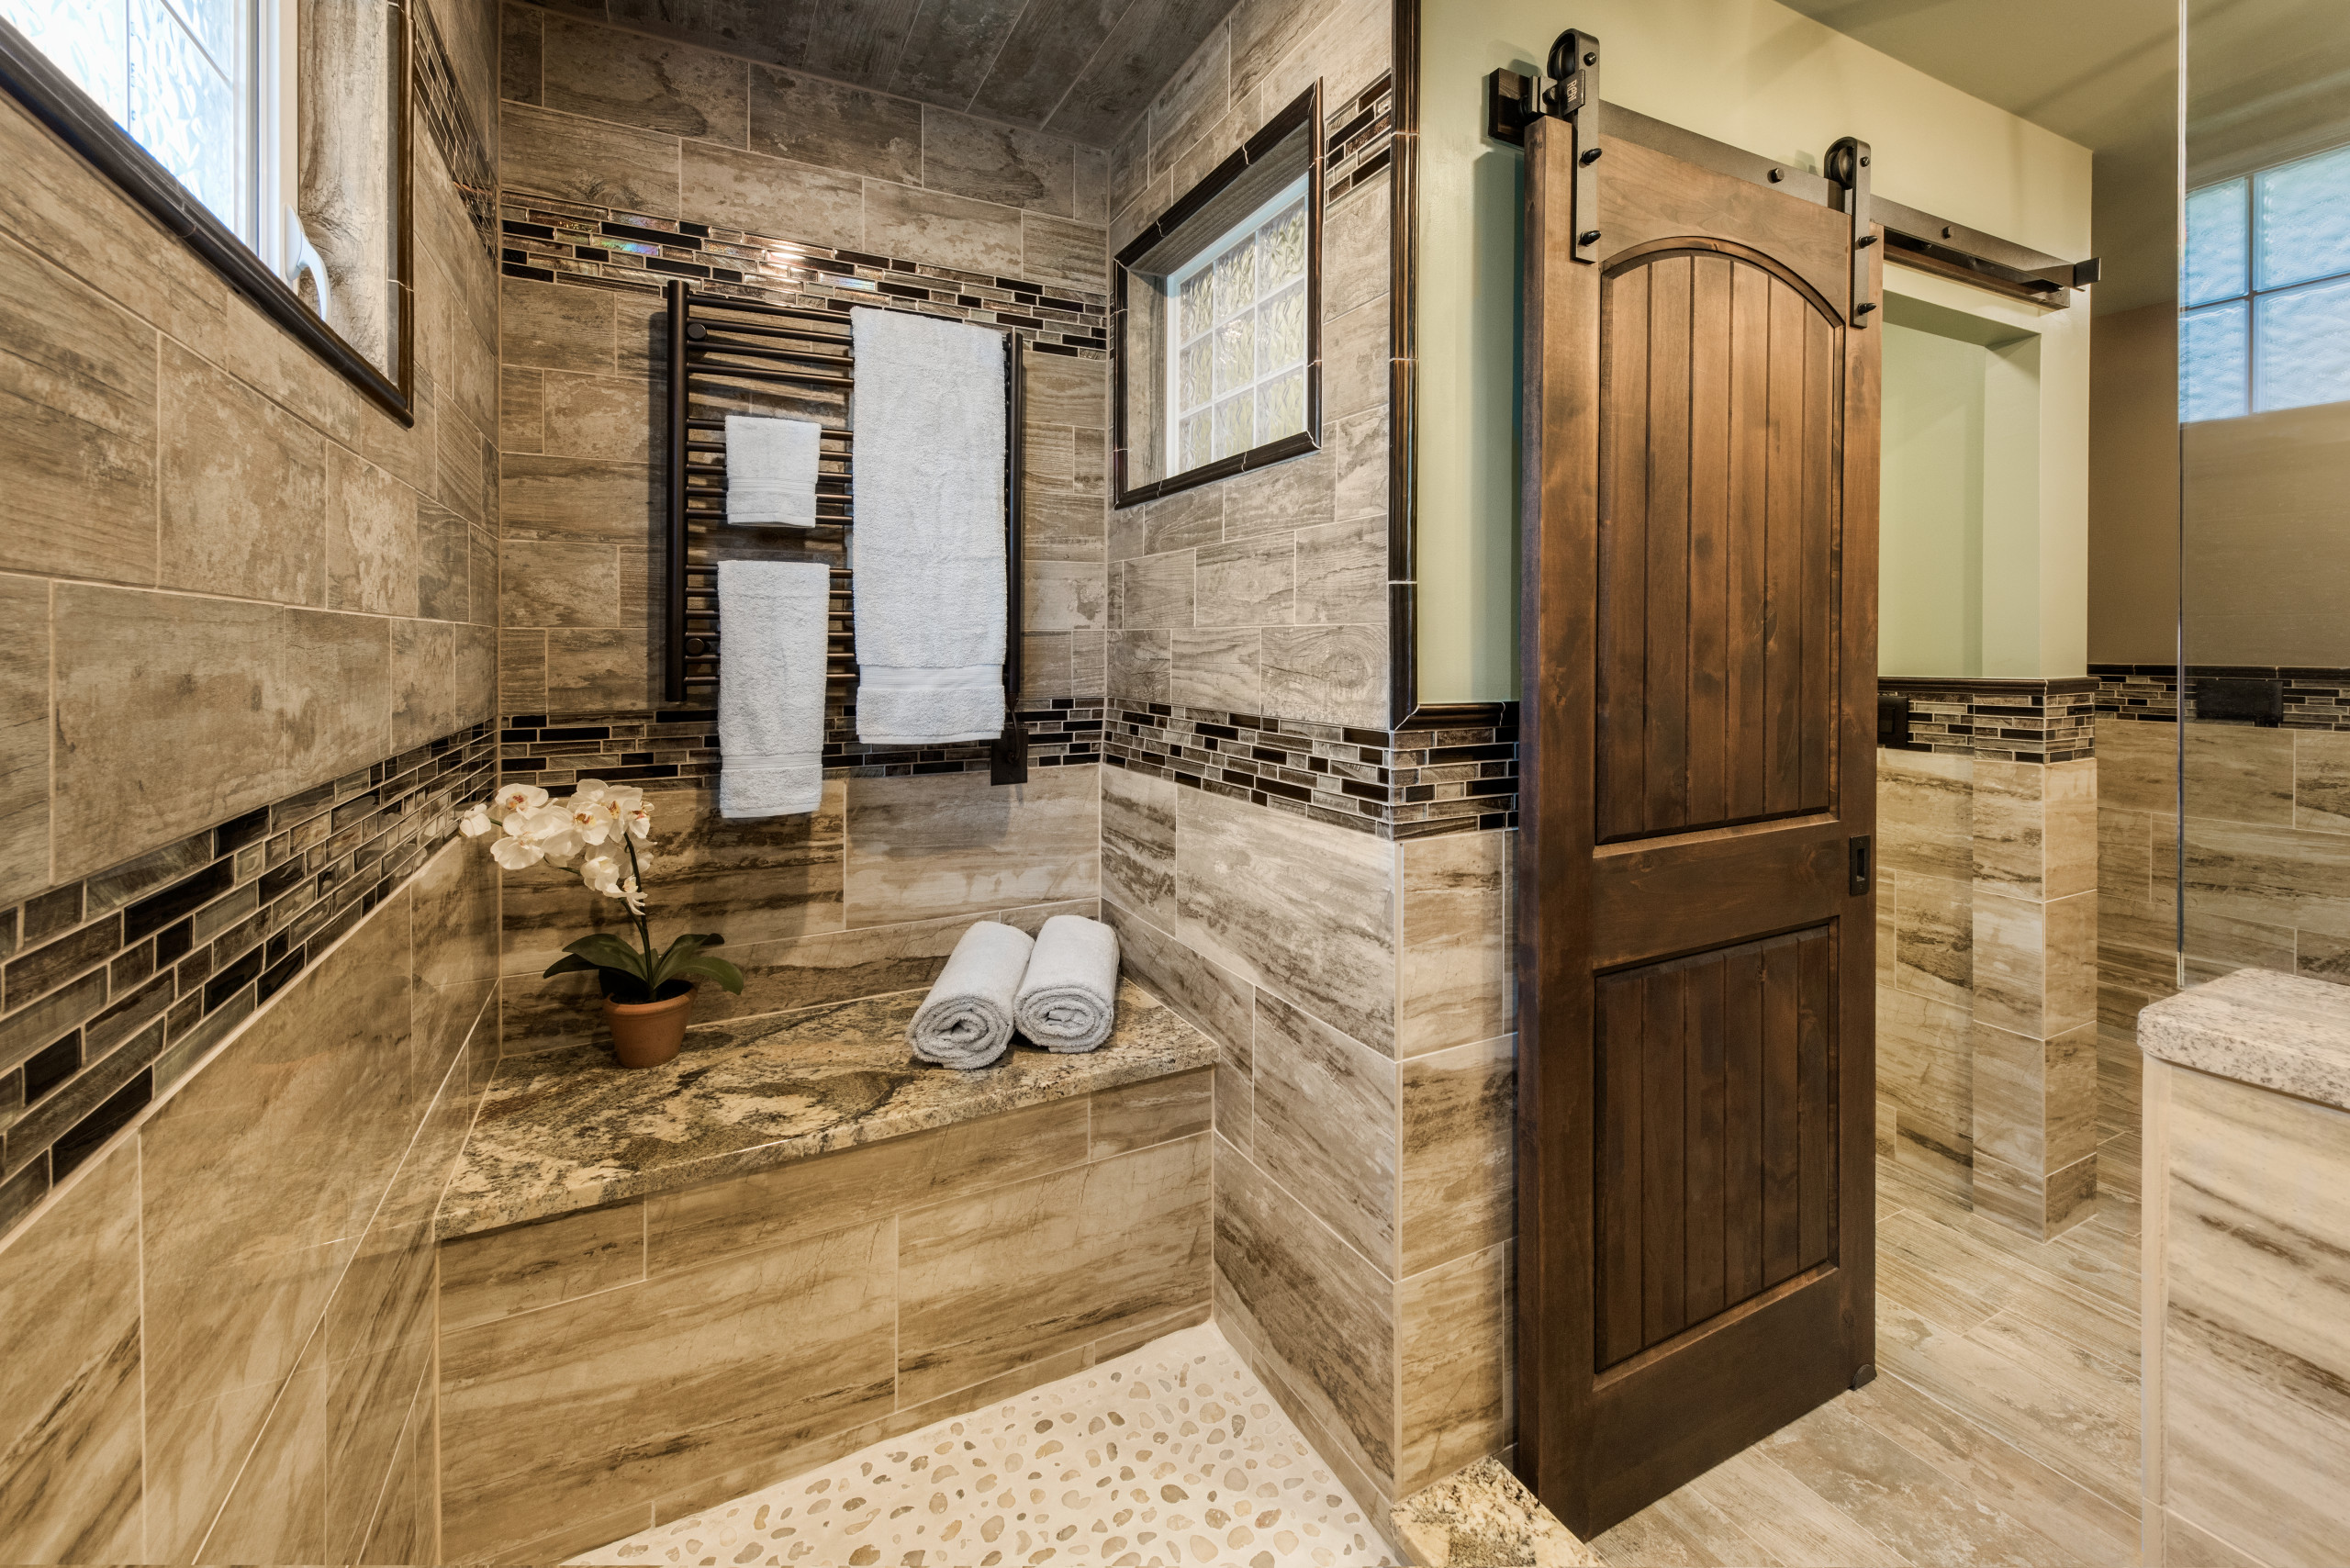 75 Beautiful Brown Tile Bathroom With Green Walls Pictures Ideas February 2021 Houzz